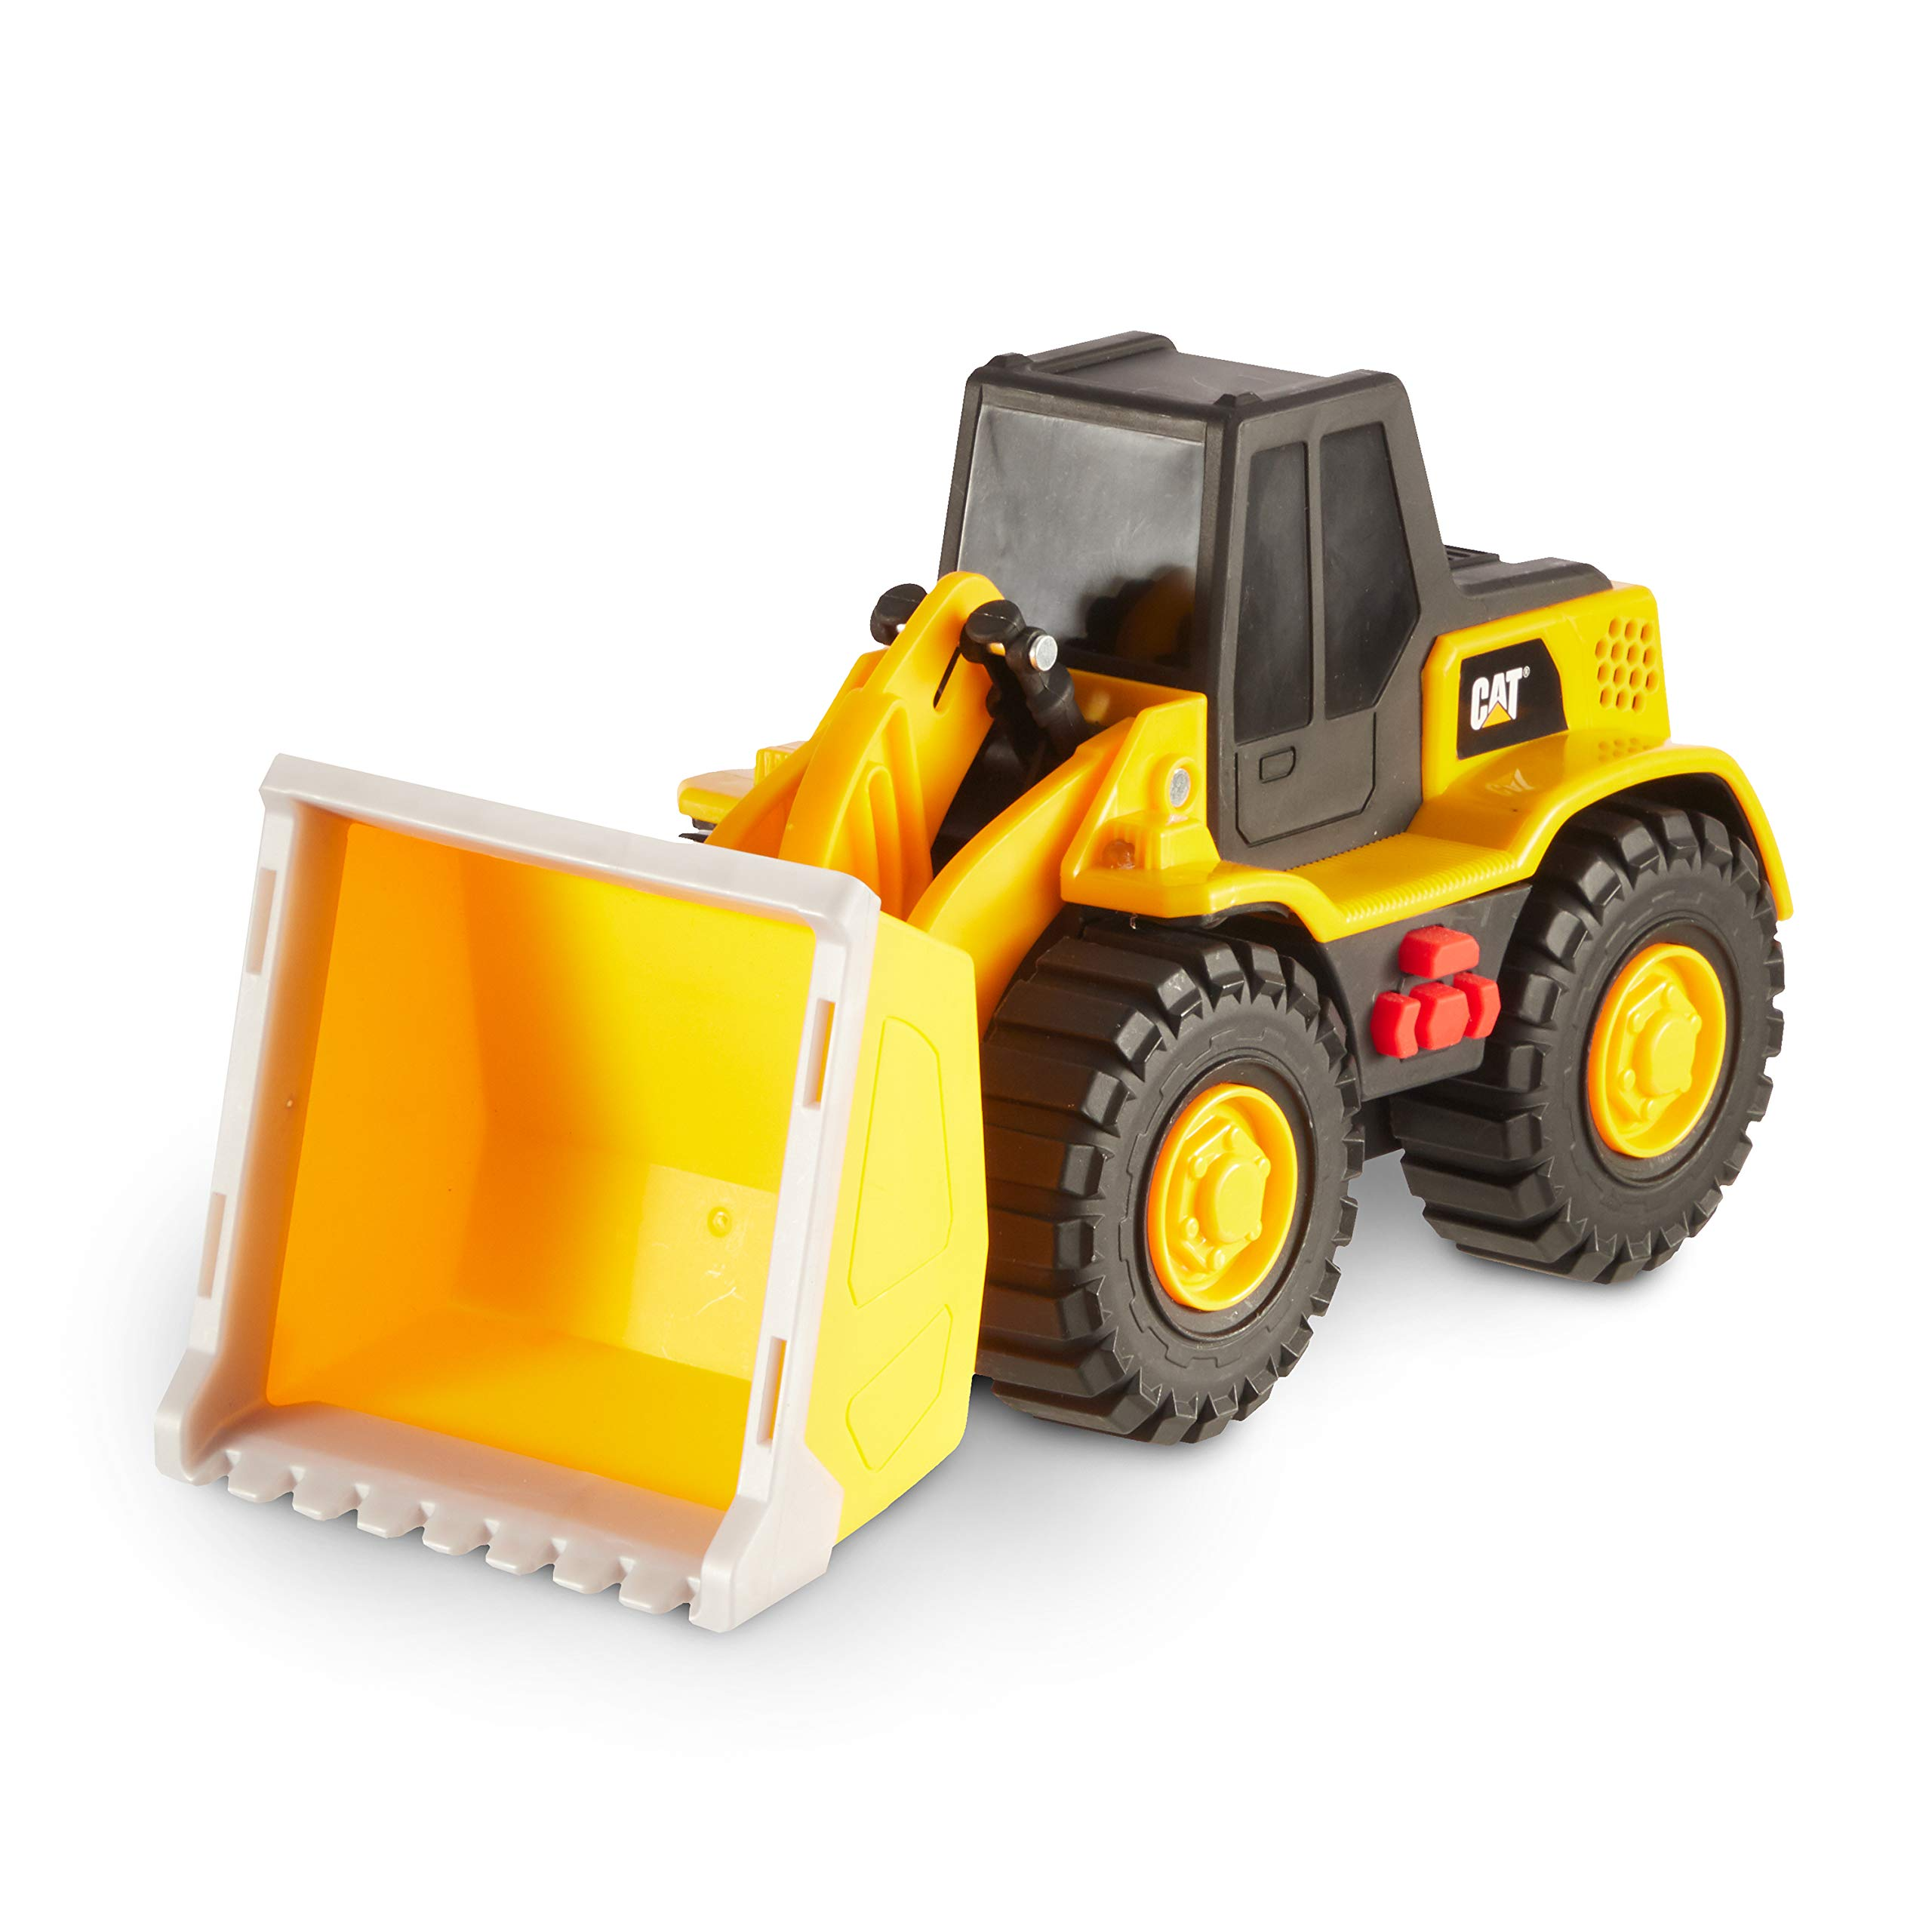 Deals on Caterpillar CAT Construction Tough Machines Toy Wheel Loader